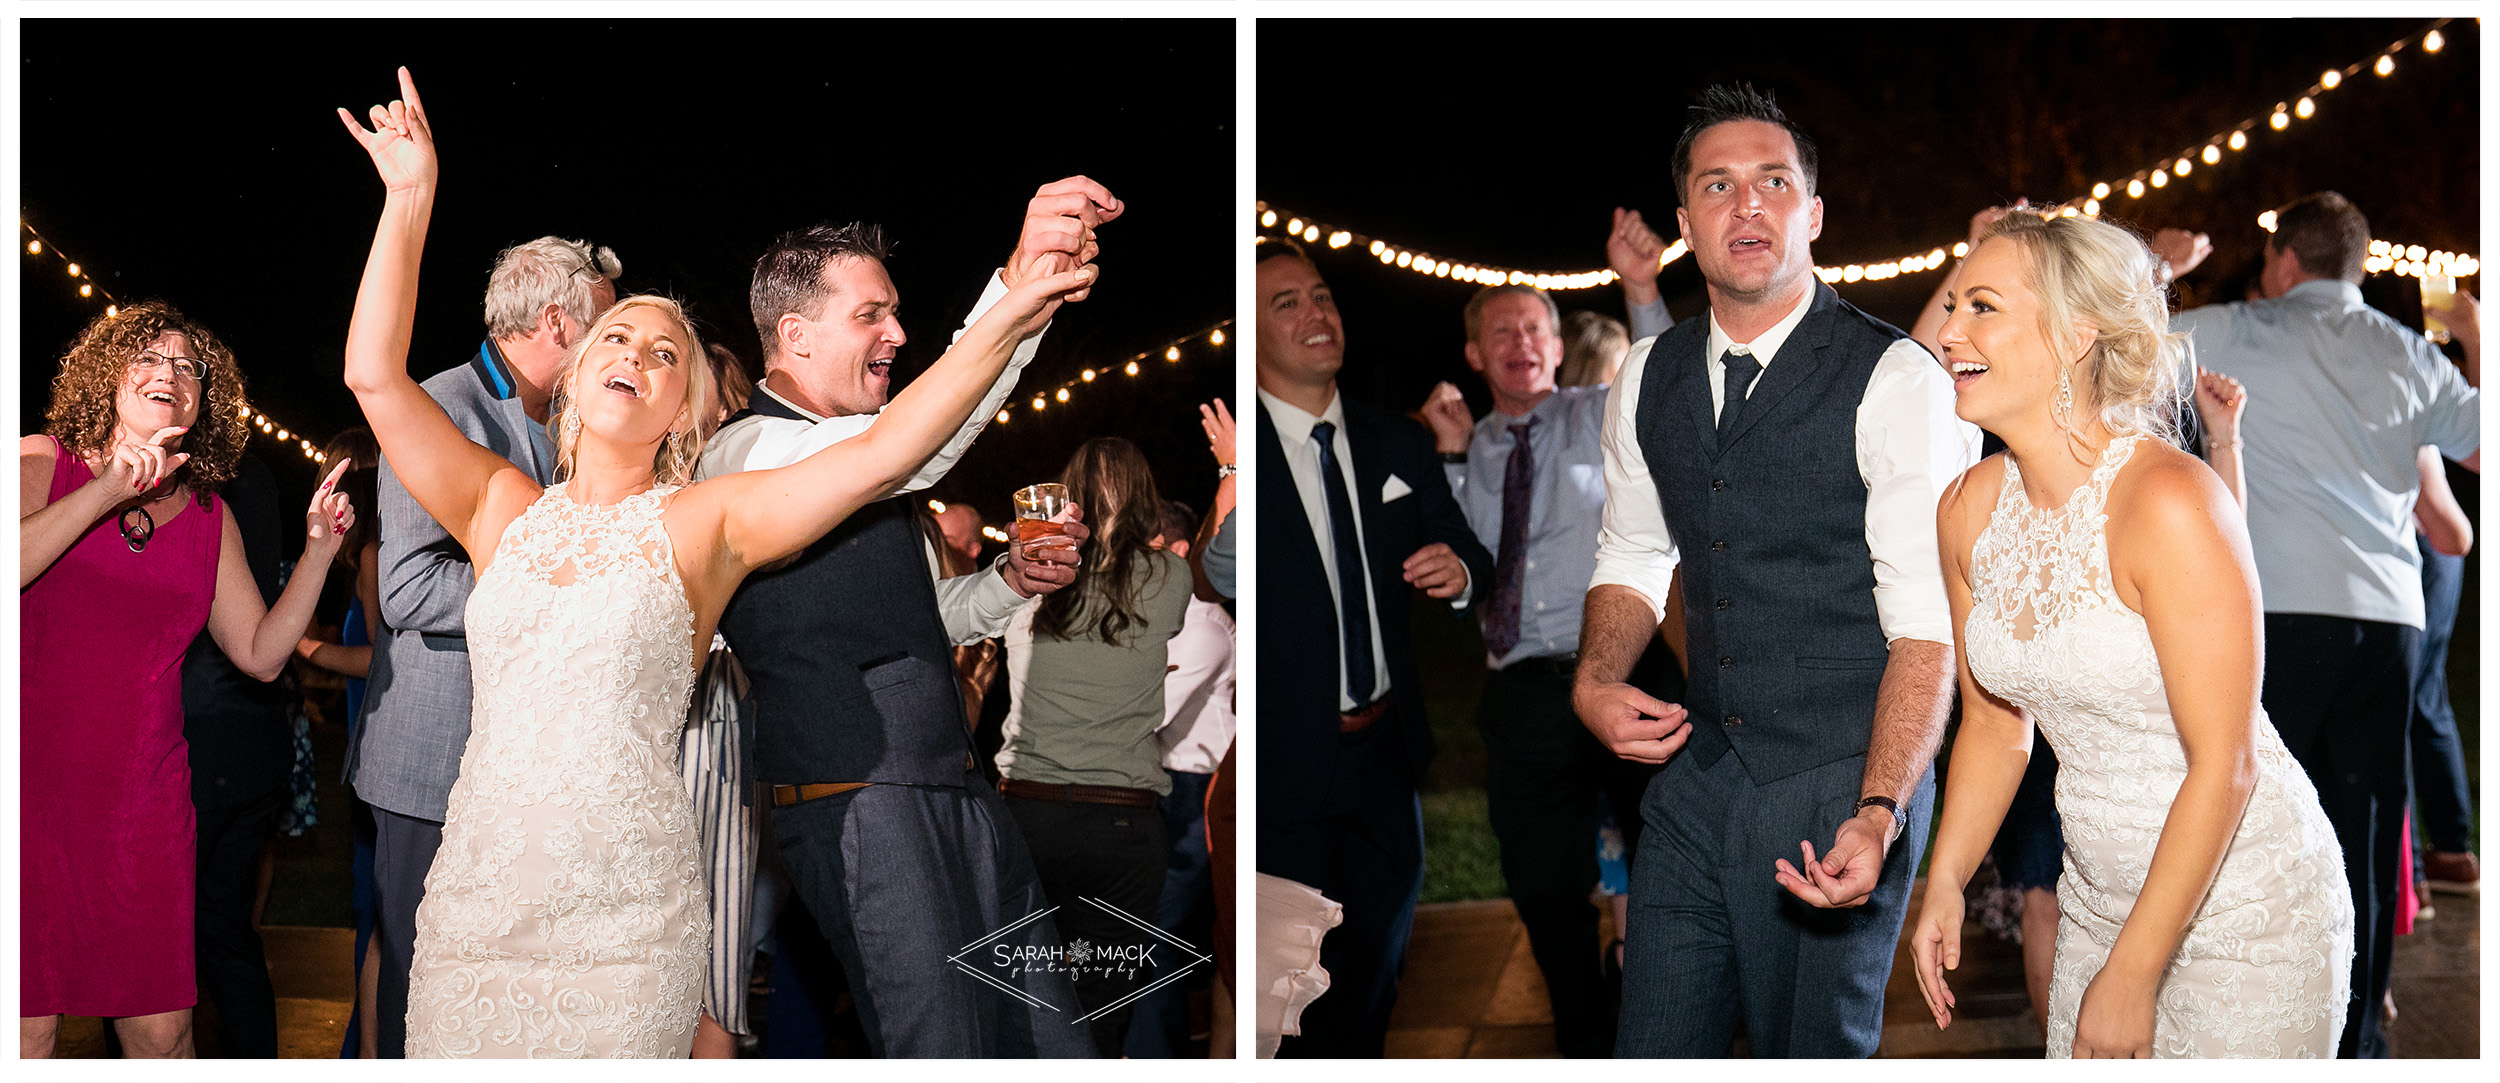 MA-Chandler-Ranch-Paso-Robles-Wedding-Photography-82.jpg